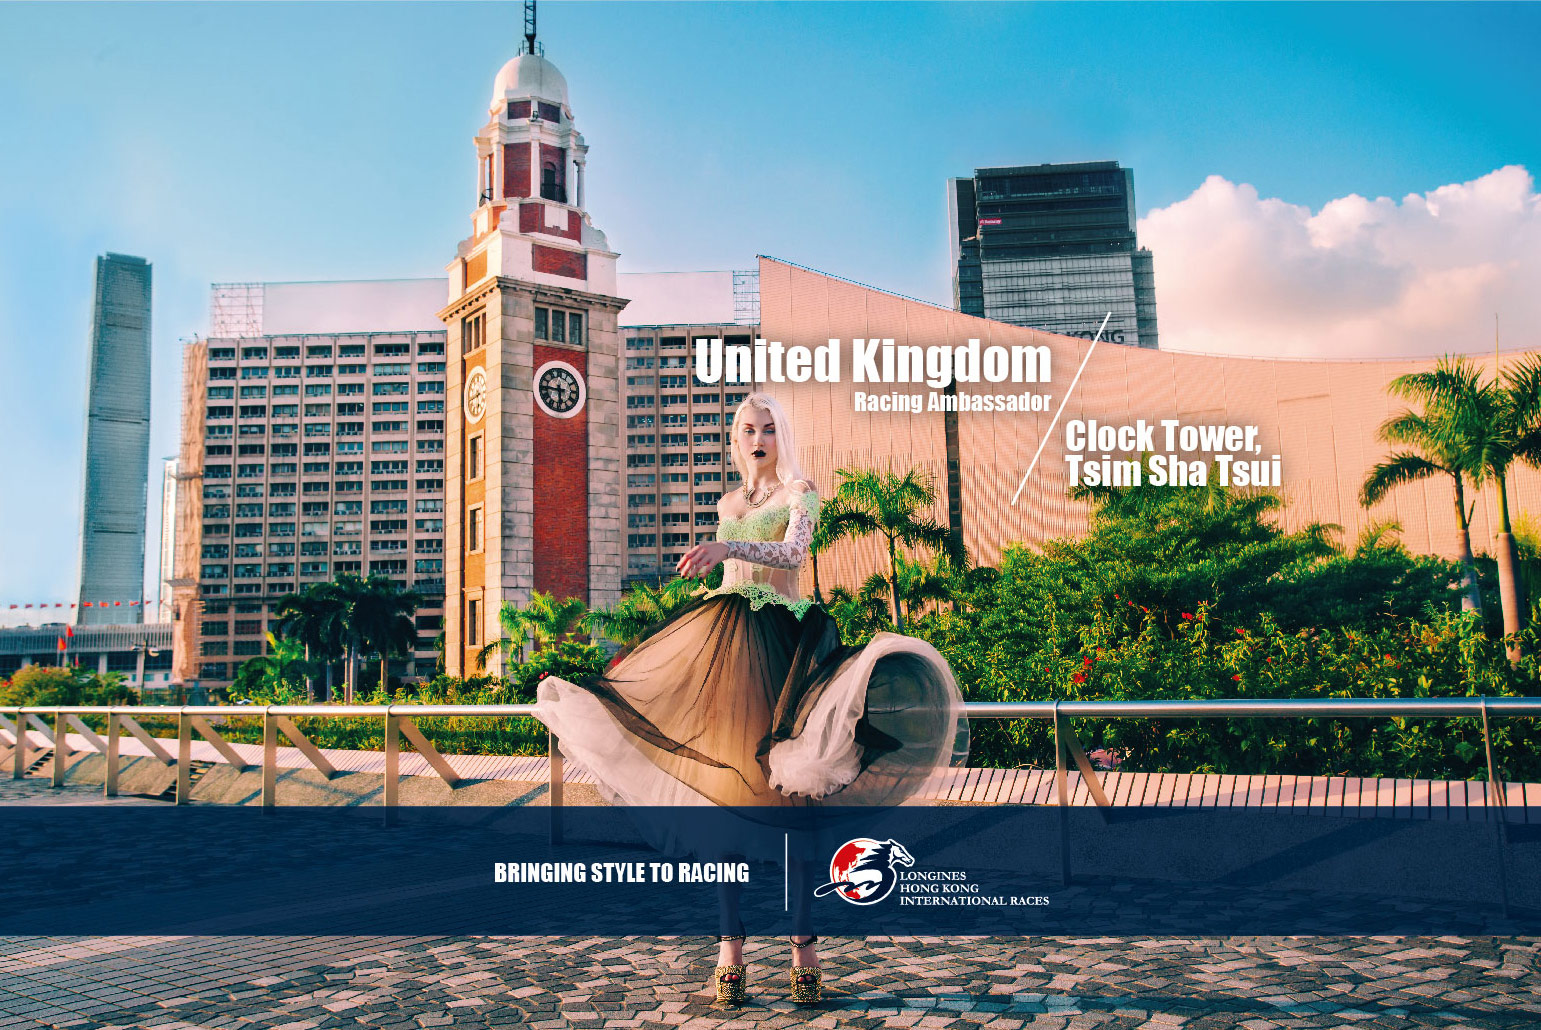 United-Kingdom-Racing-Ambassador---Clock-Tower,-Tsim-Sha-Tsui